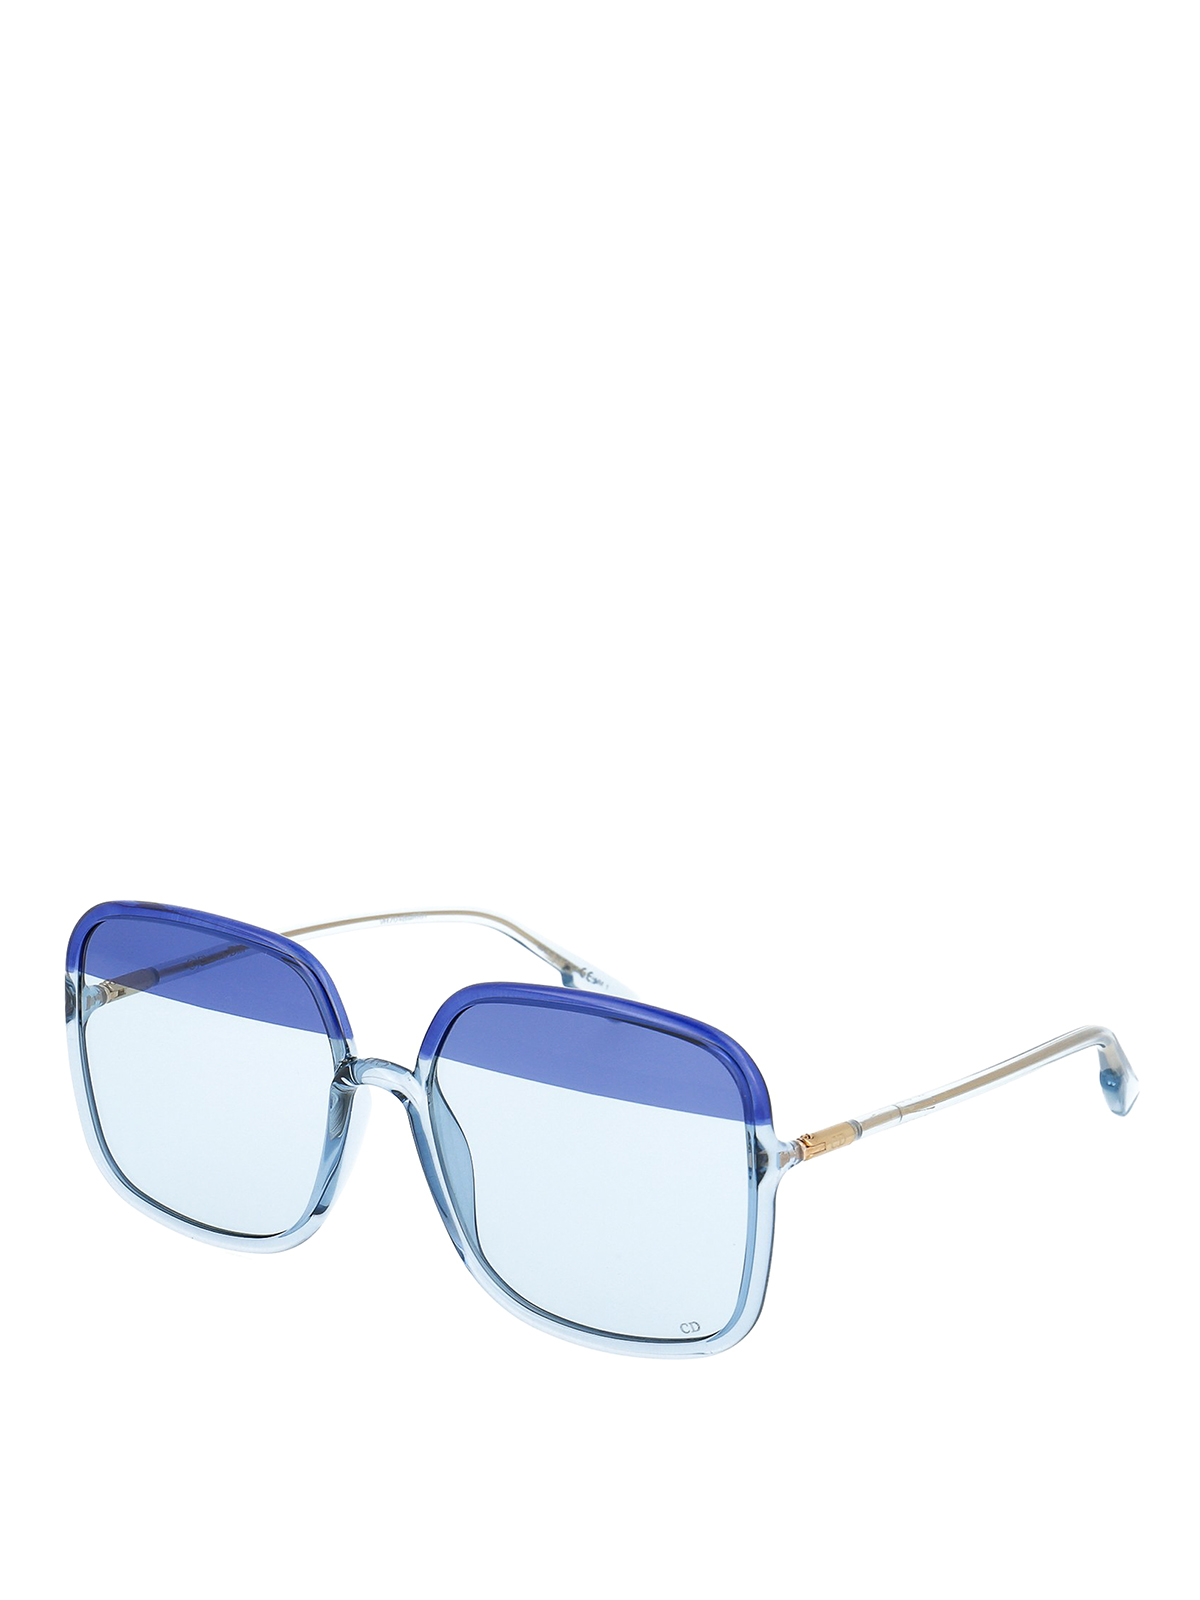 Dior Stellaire1 Two-Tone Lens Sunglasses In Blue